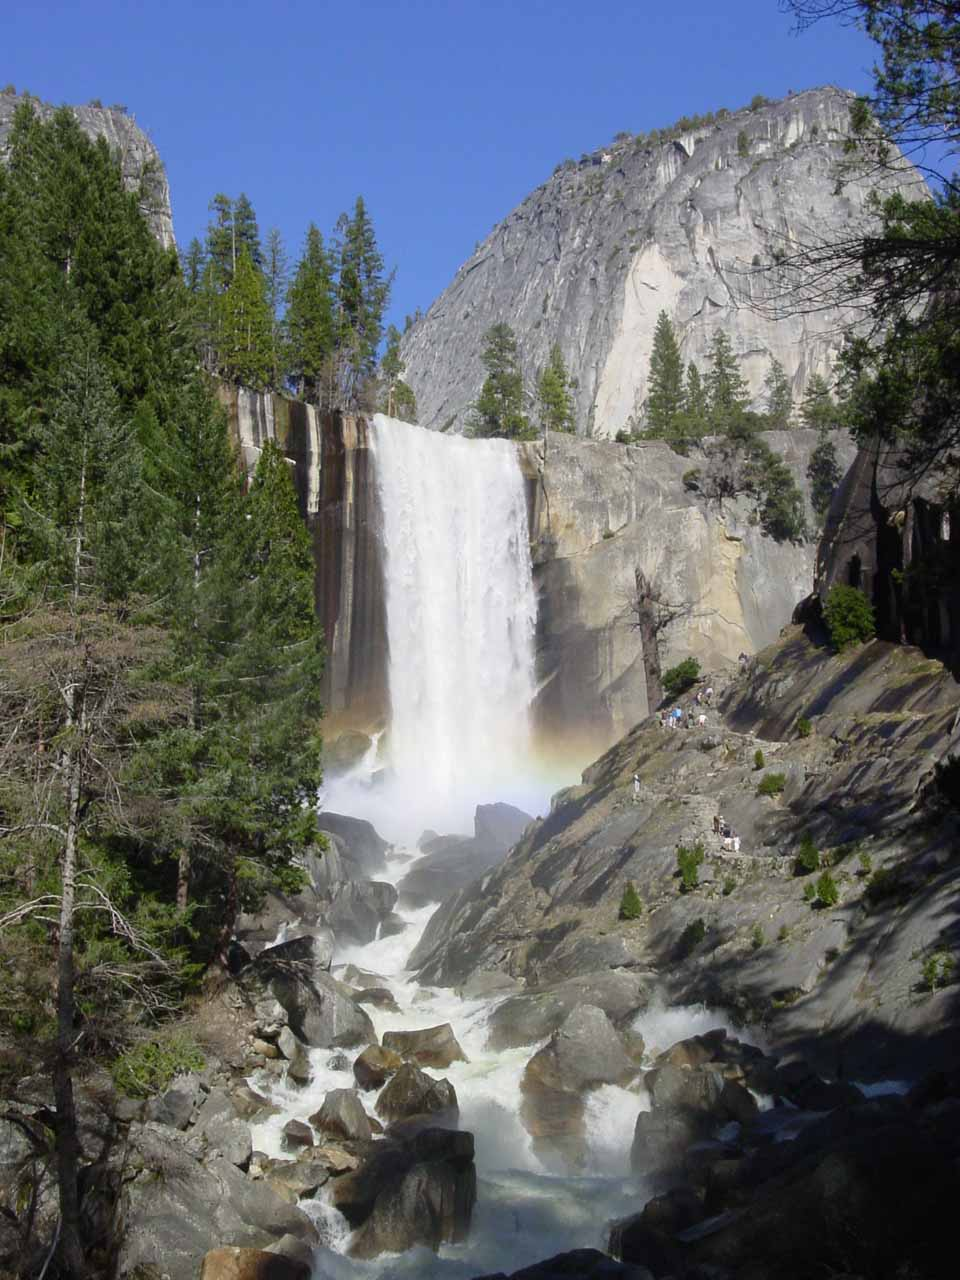 Looking up at Vernal Fall from Lady Franklin Rock